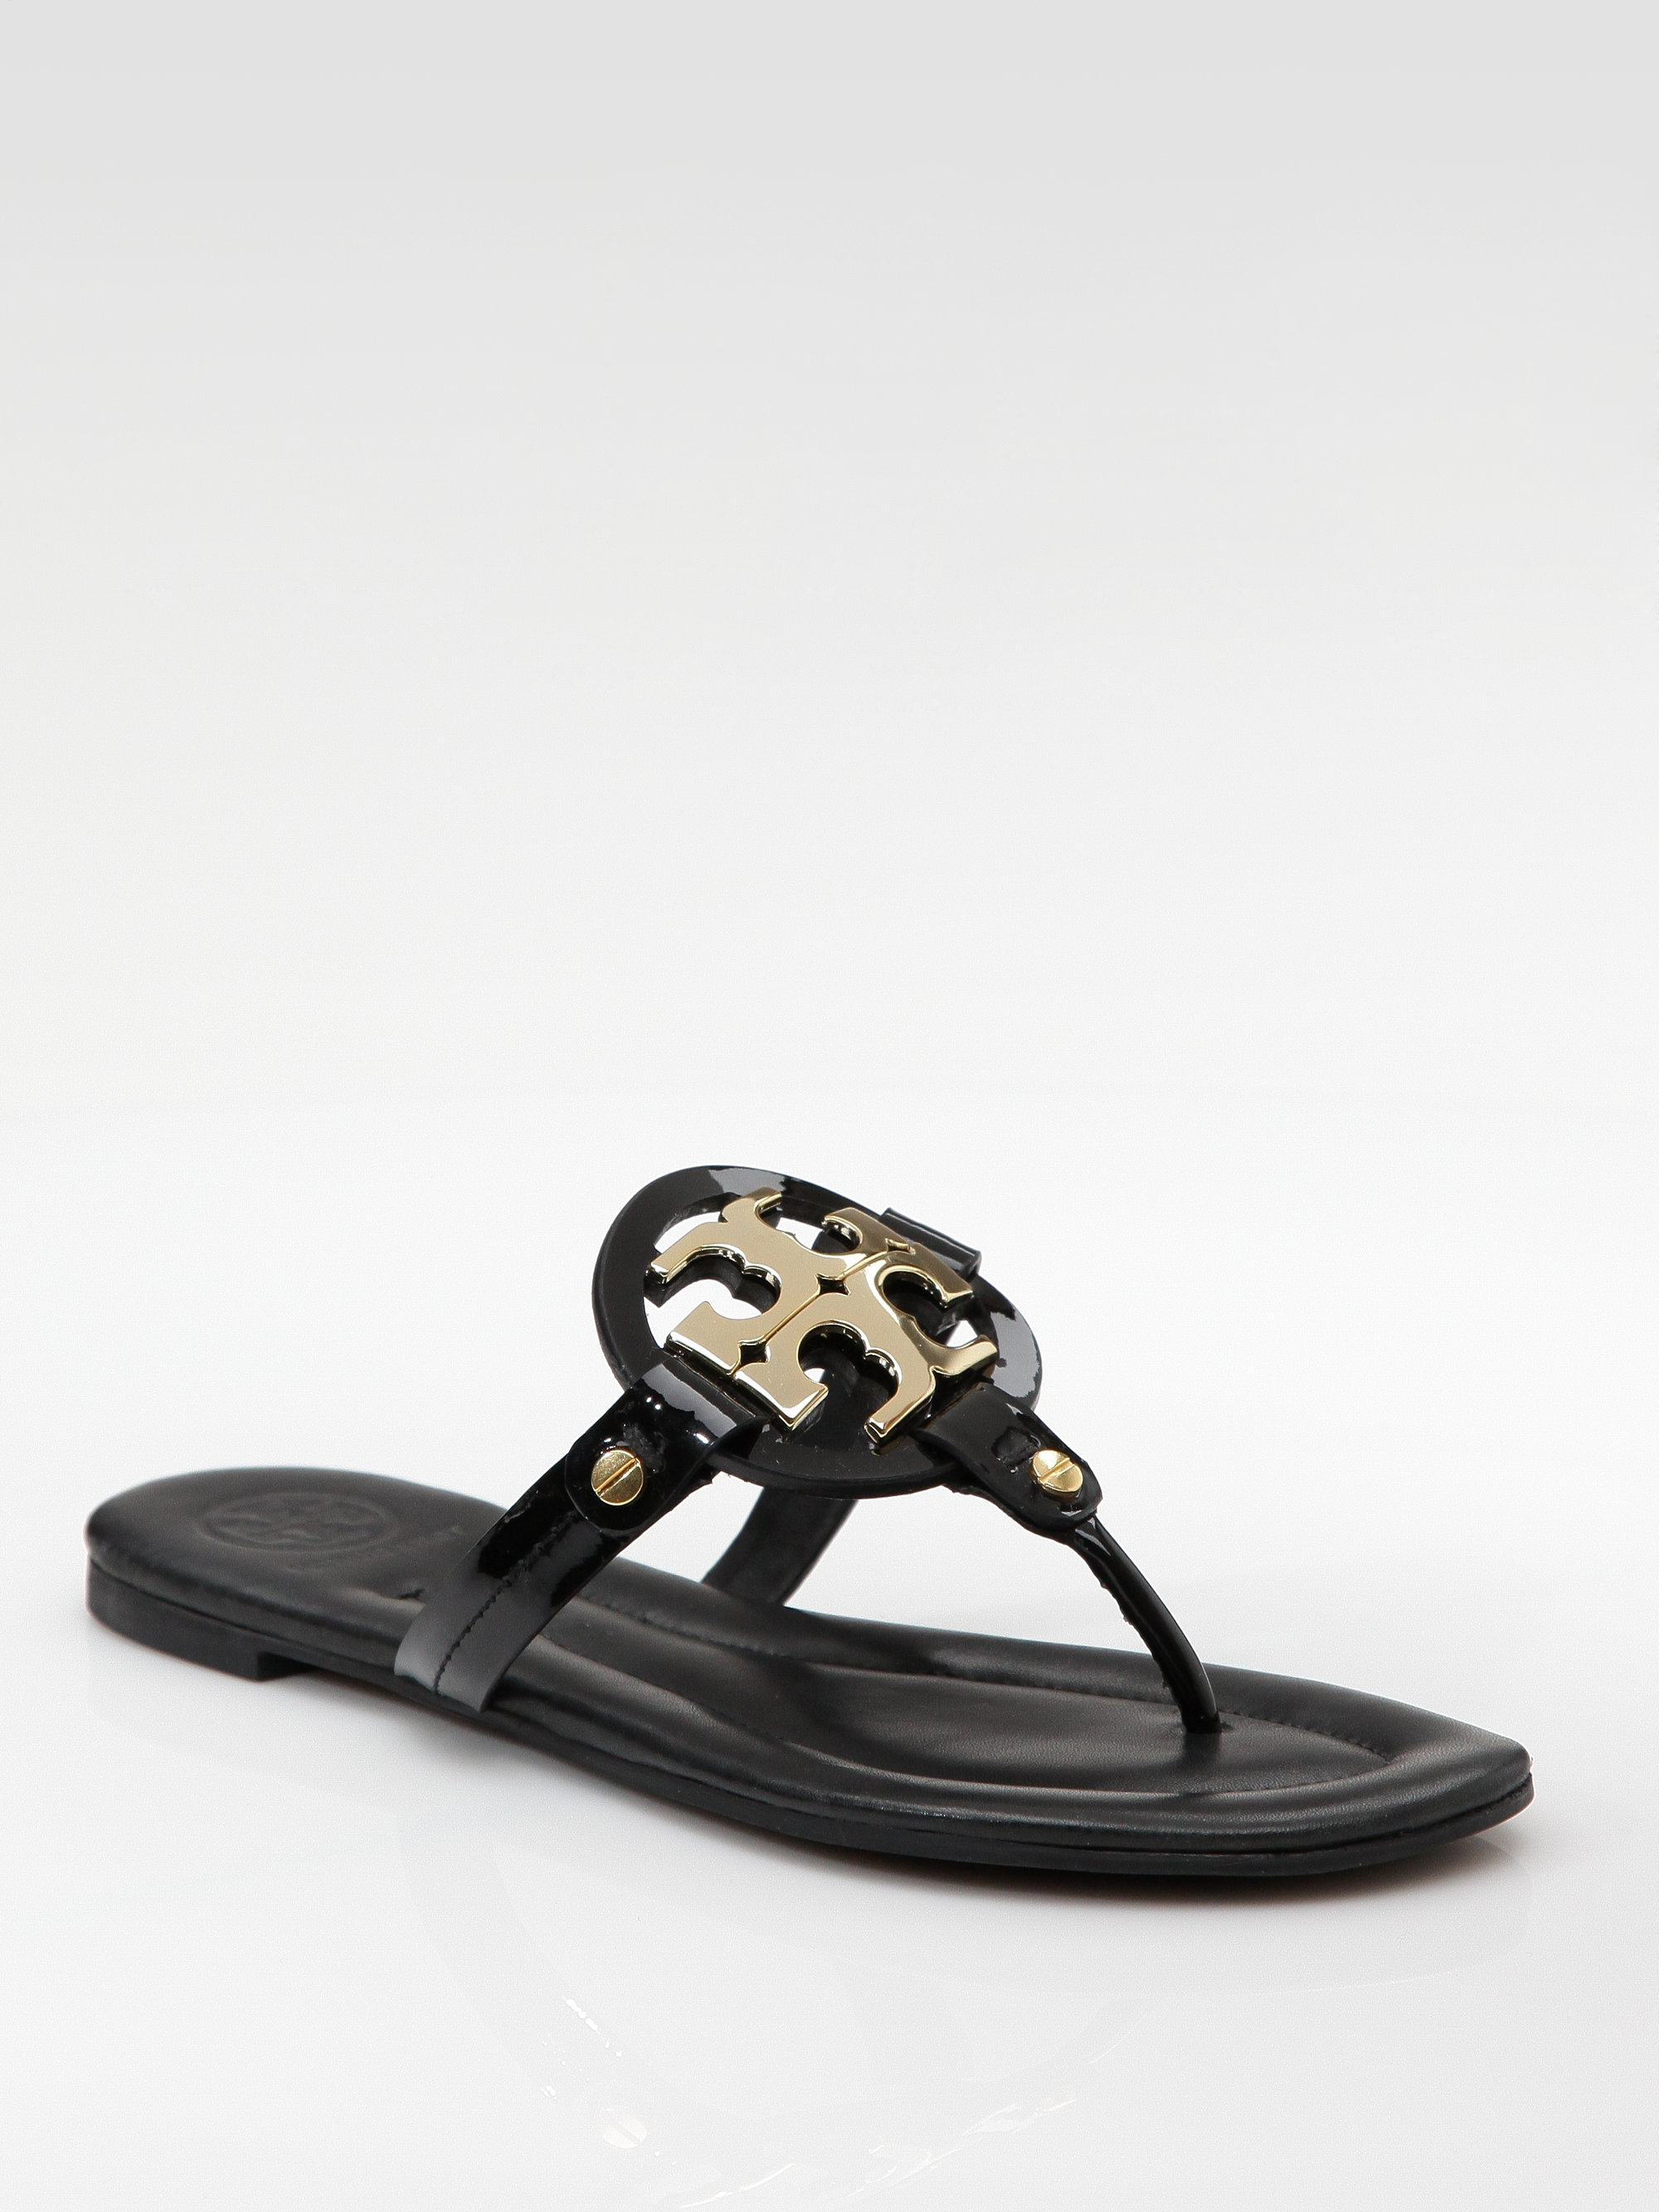 f642d13f381 Tory Burch Patent Leather Flat Sandals in Black - Lyst